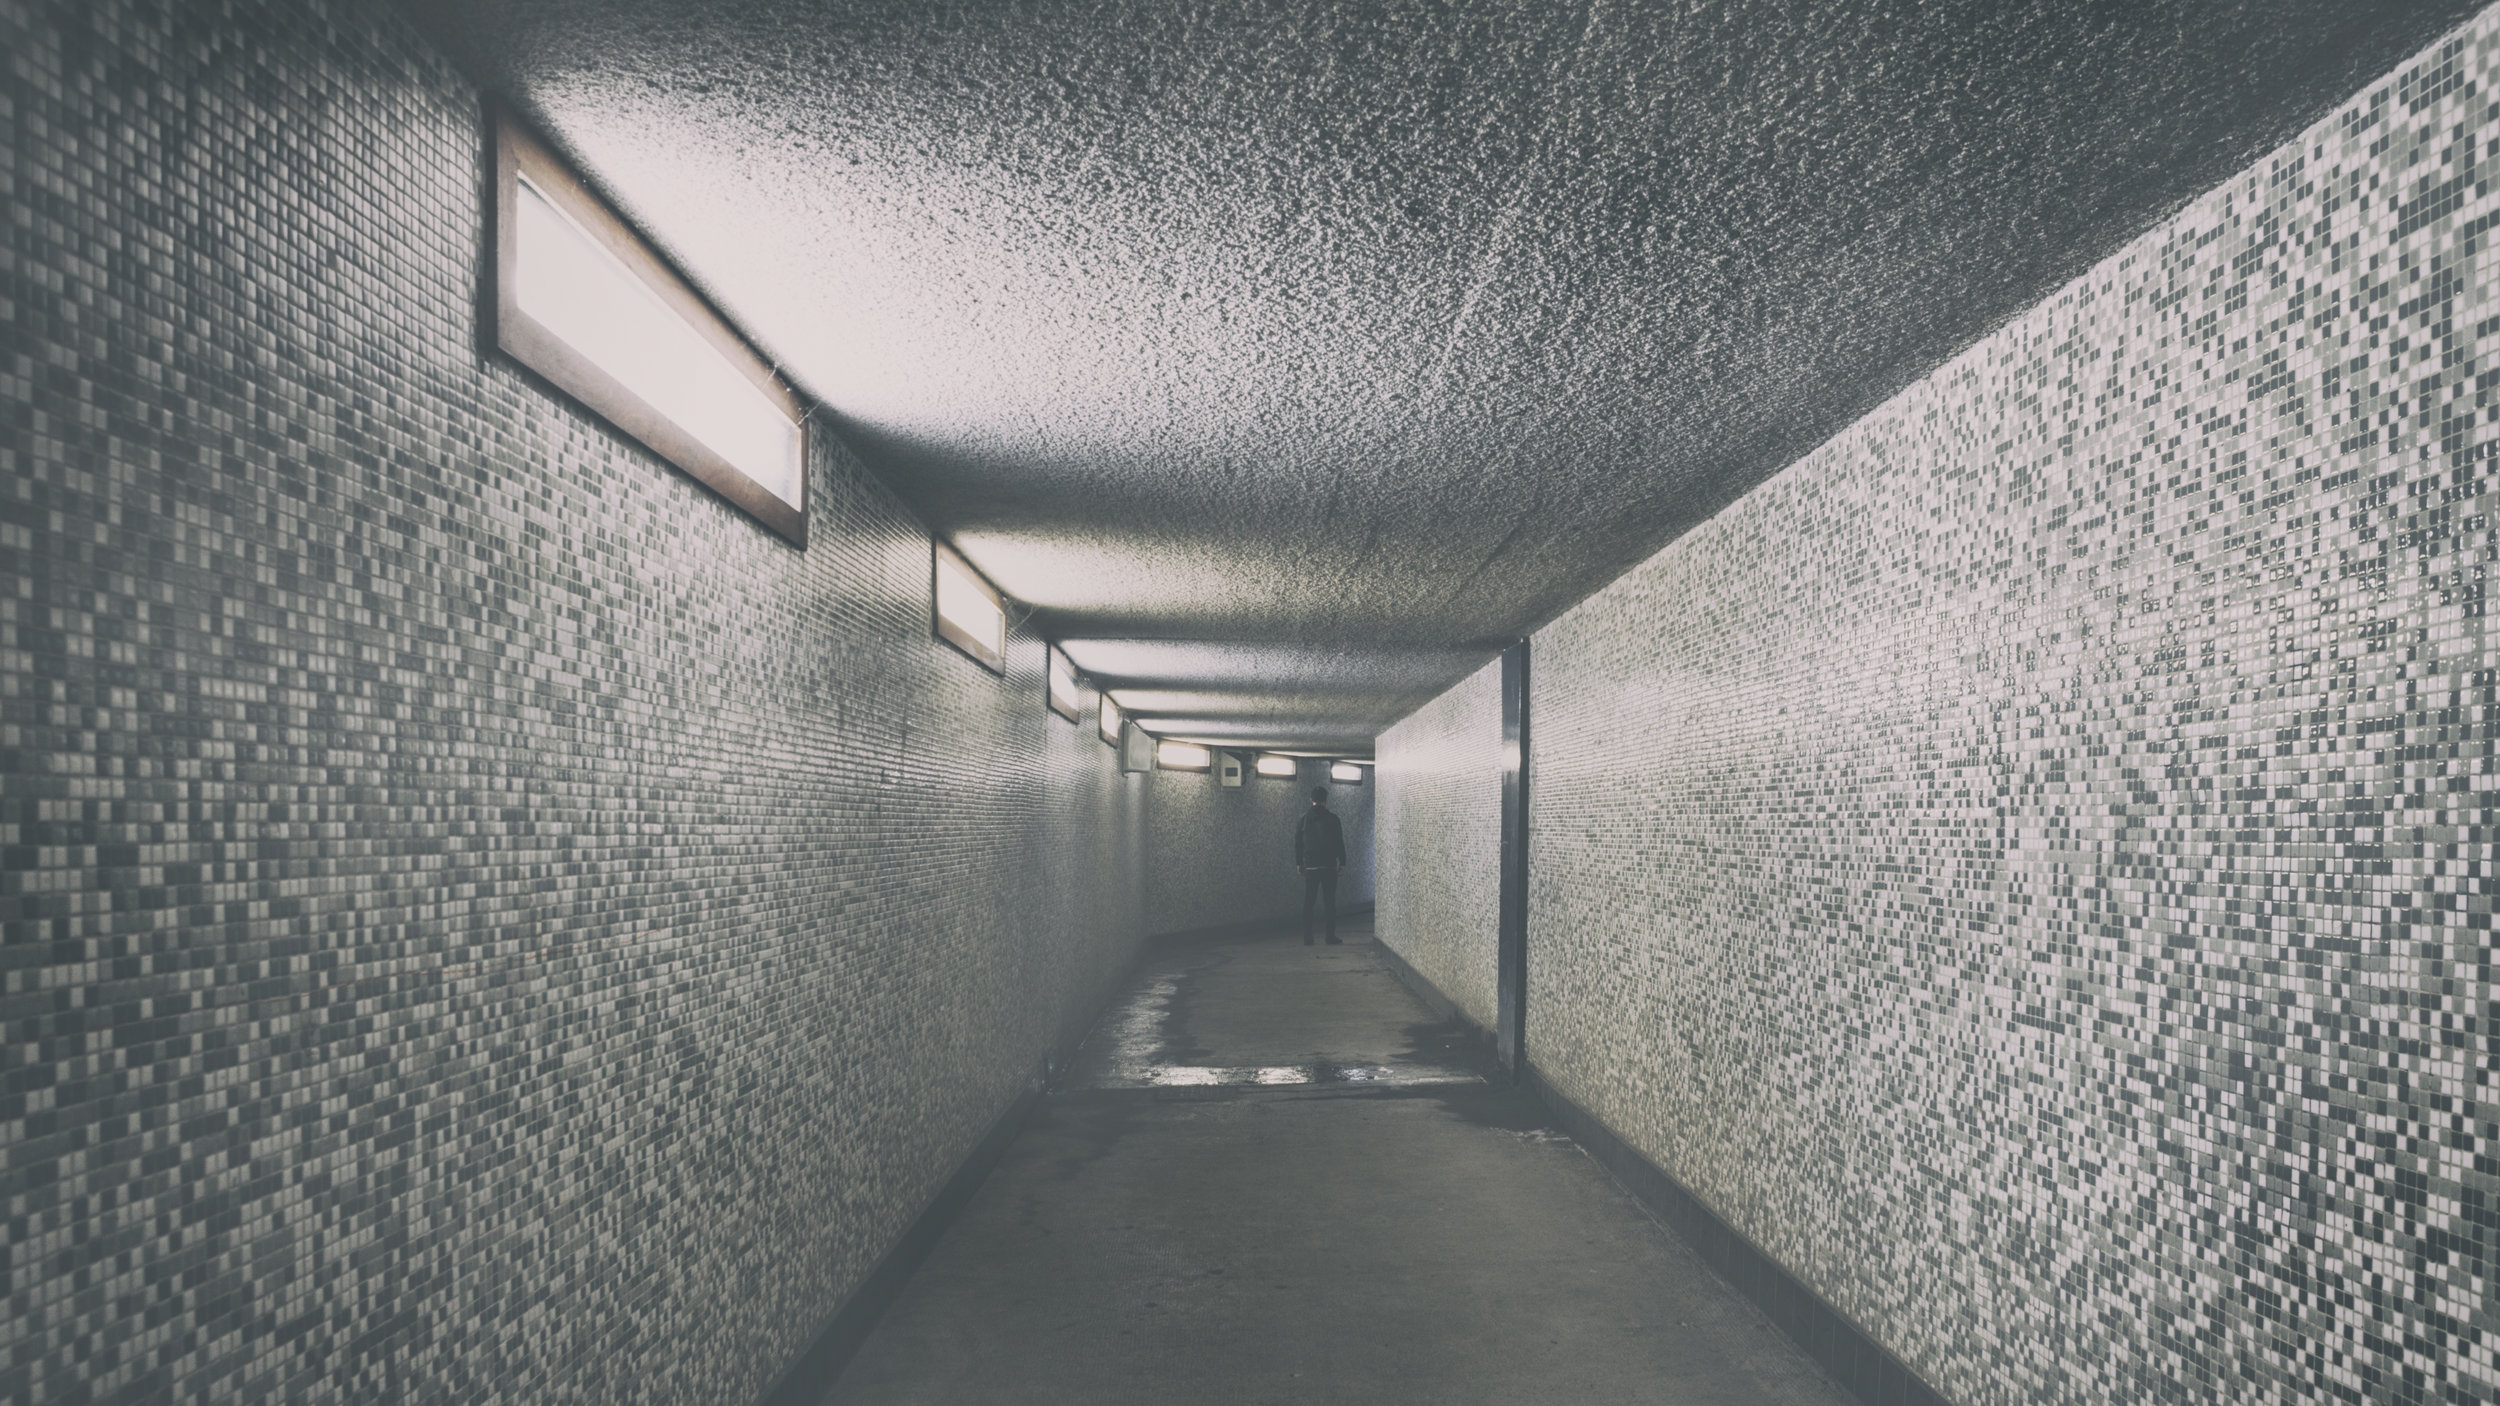 Fade Out (Tunnel).jpg